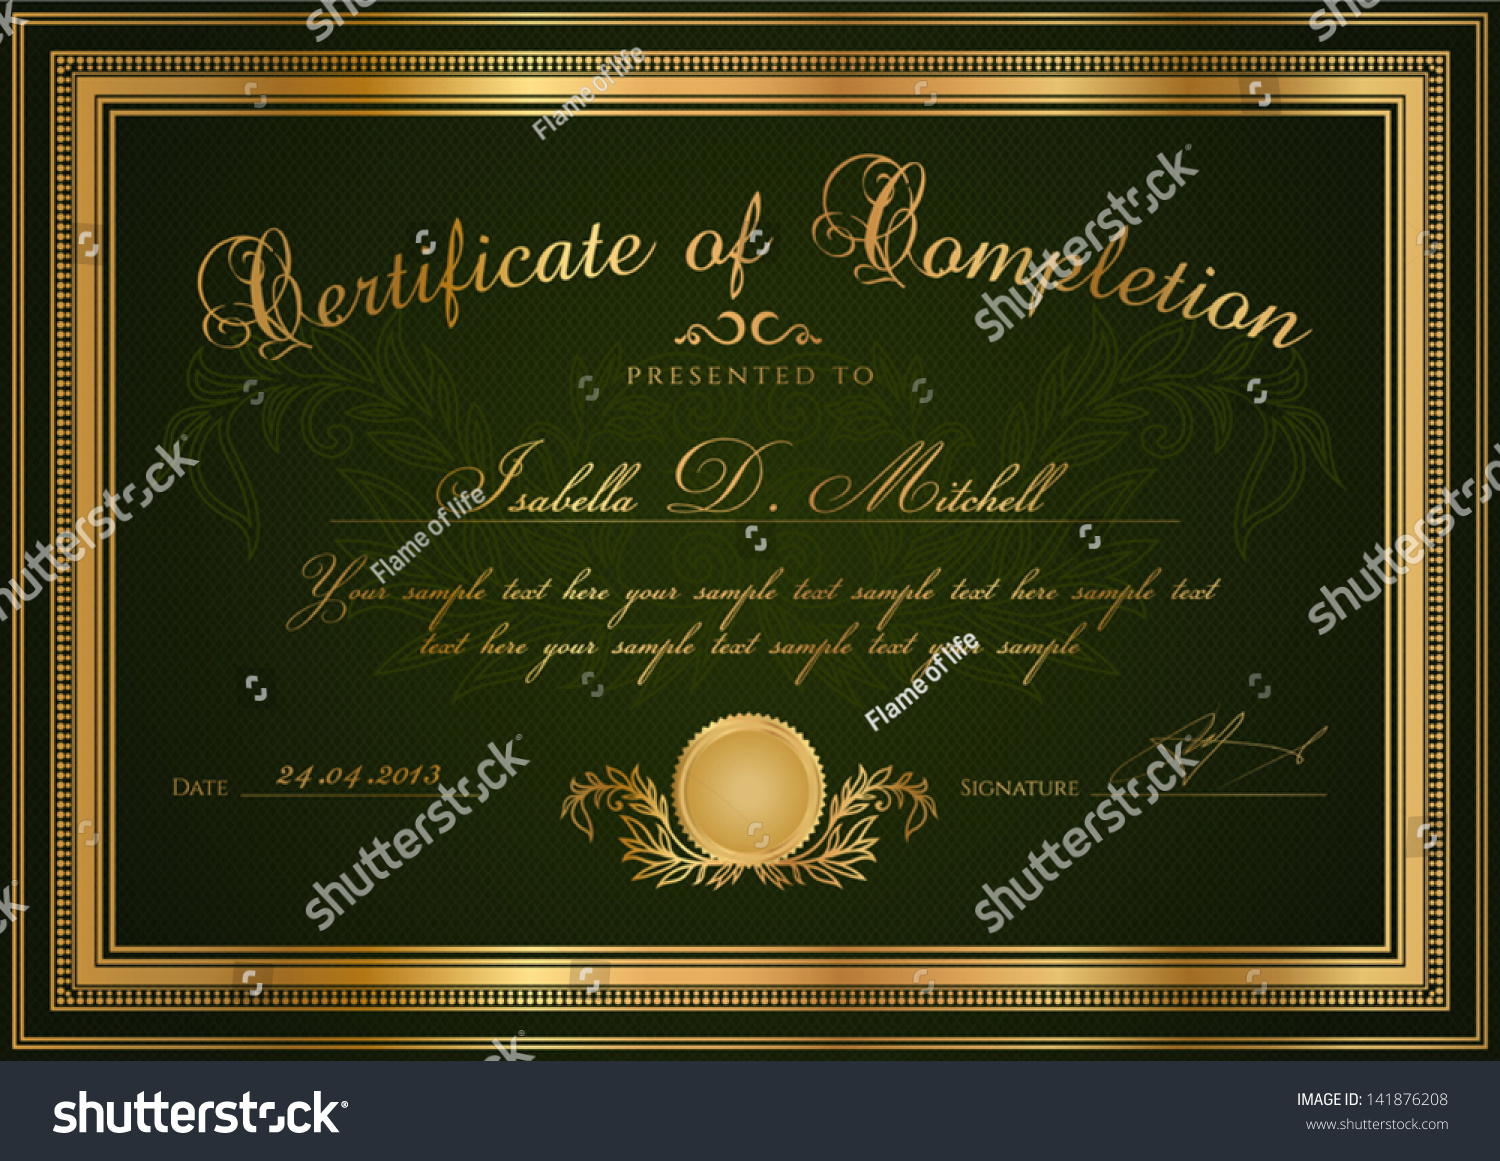 life saving award certificate template - green certificate of completion template or sample blank